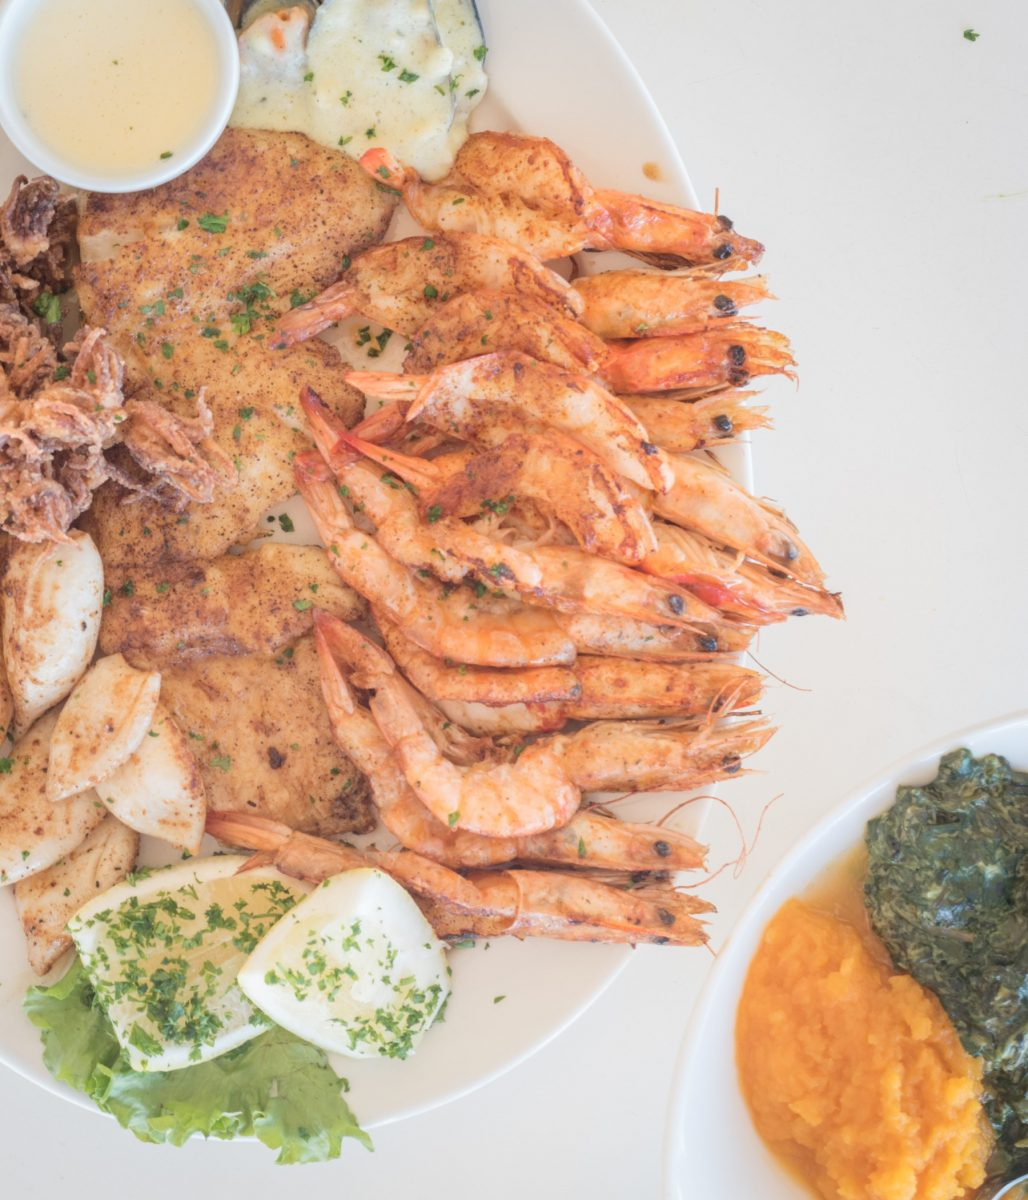 Catch 22 Beachside Grille & Bar | Get in my Belly 5